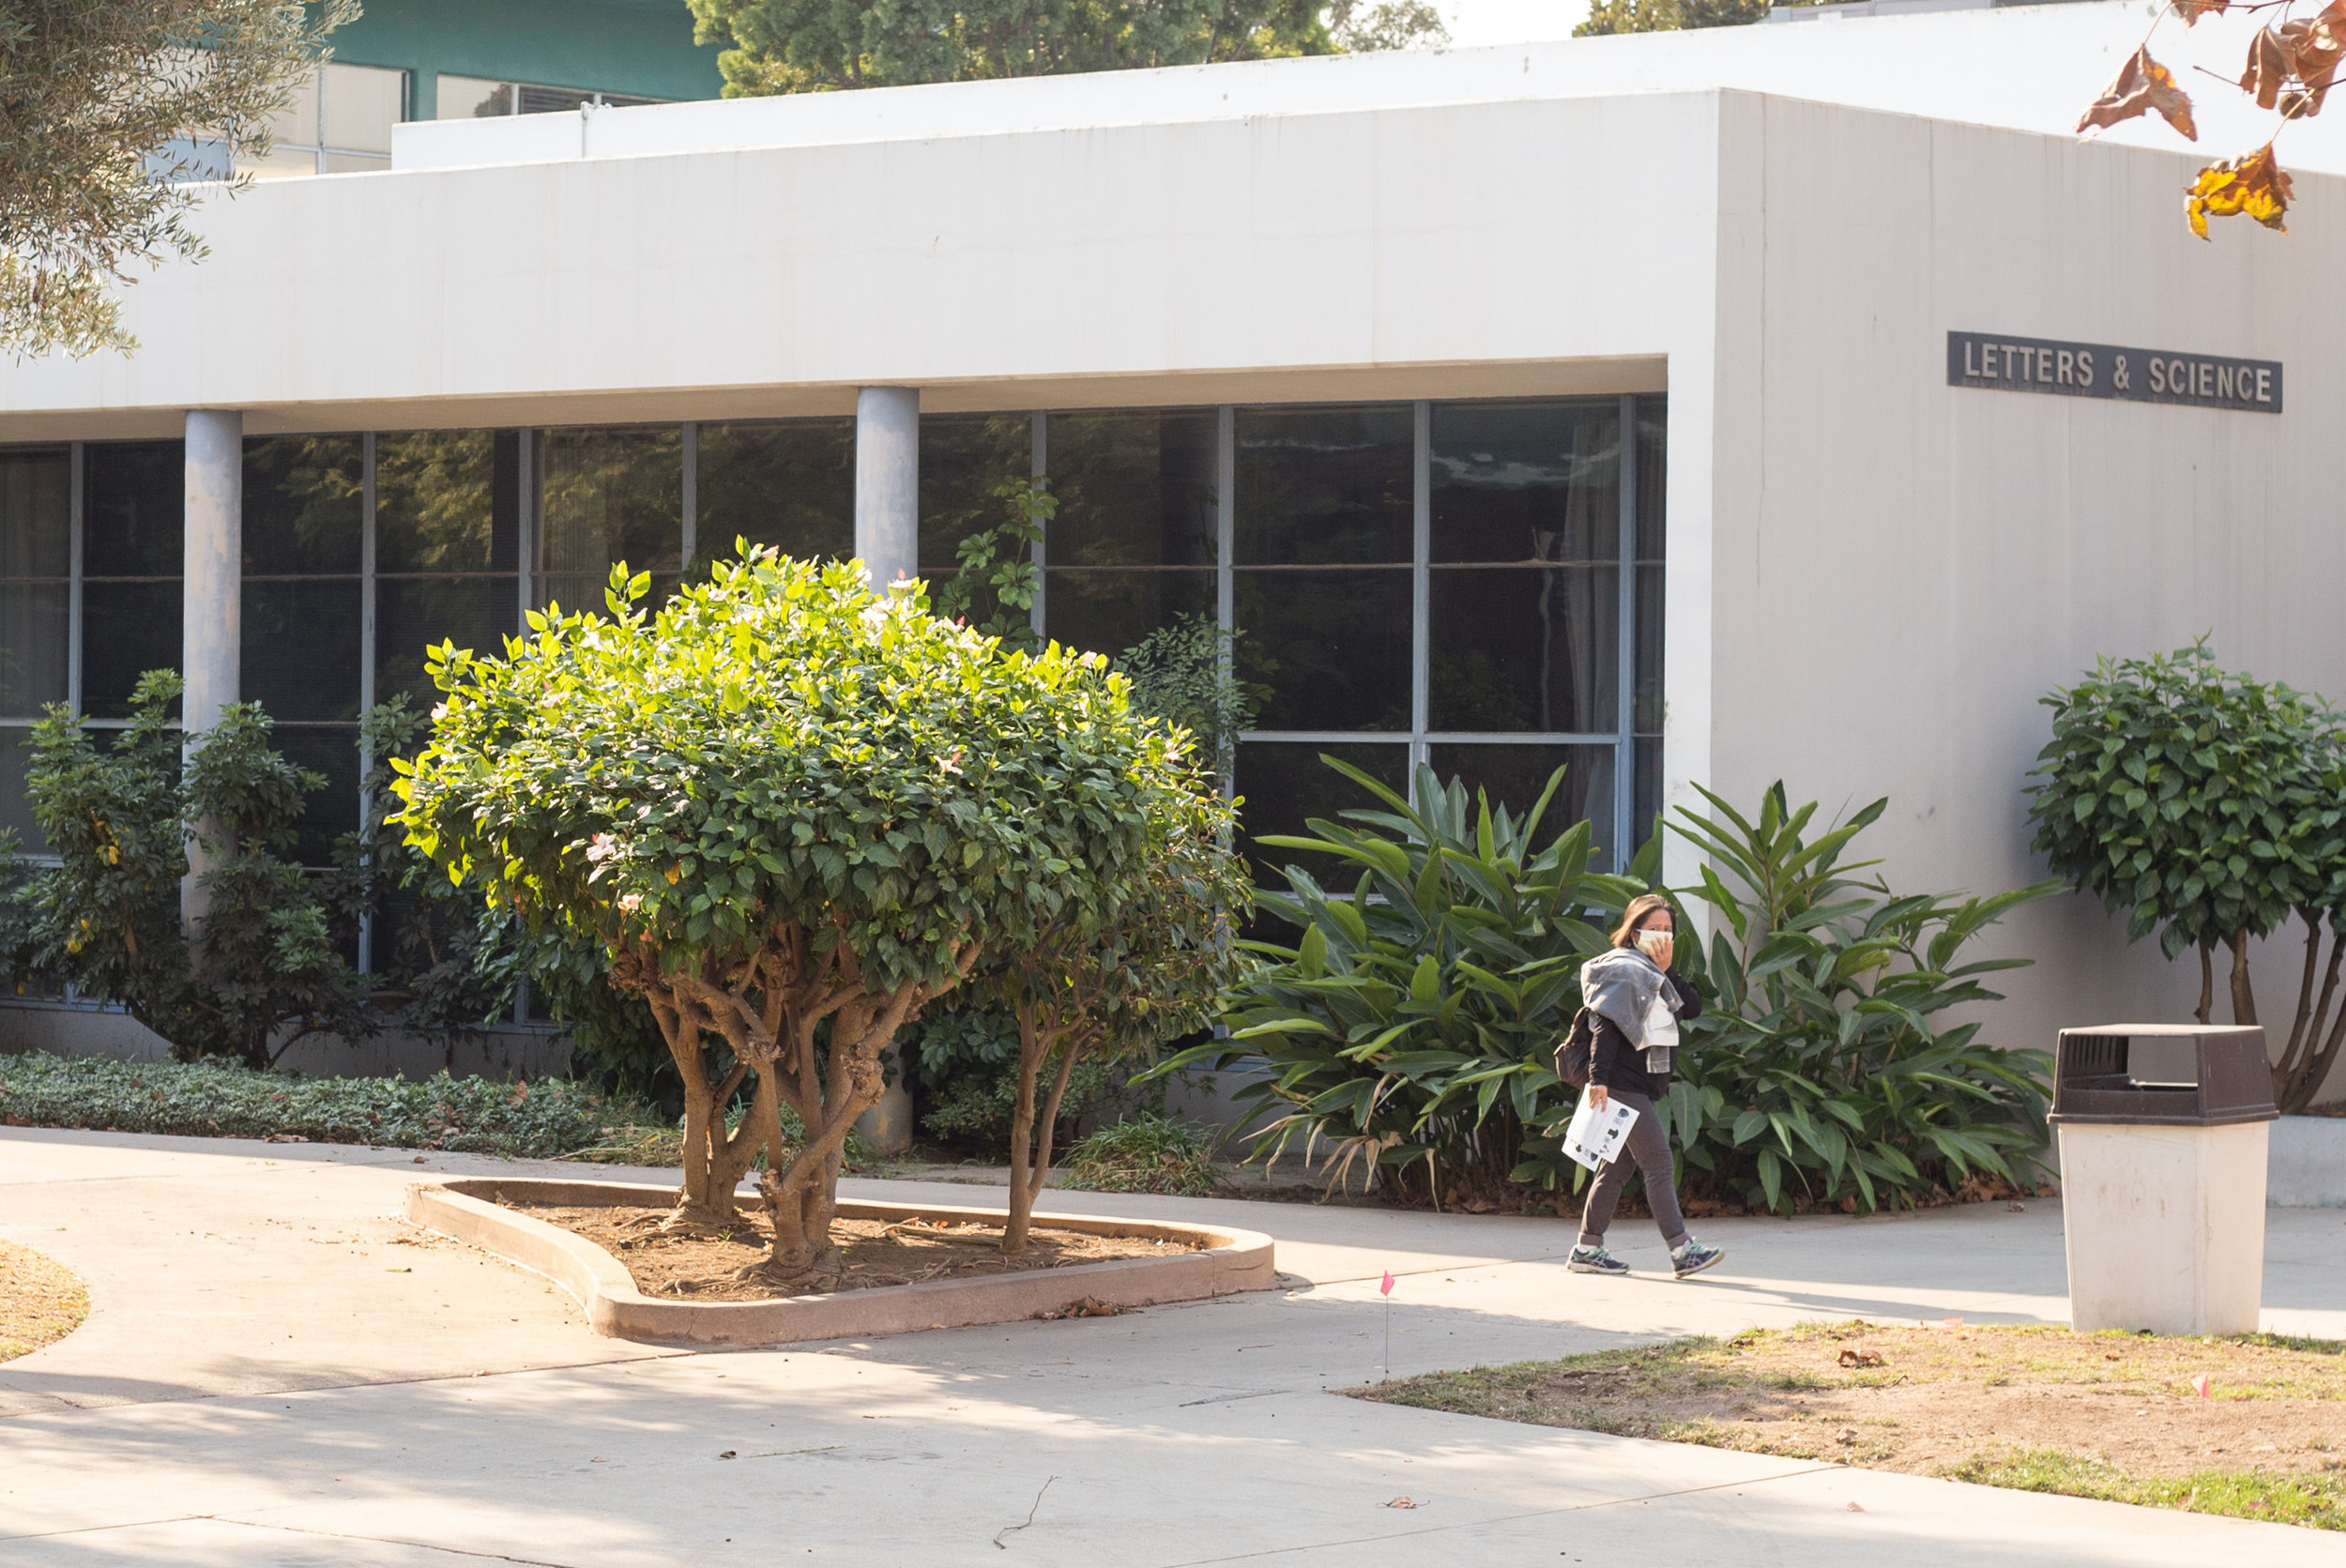 """A Santa Monica Student walks by the Letters & Science building on SMC's main campus. She is wearing a mask because of the poor air quality from the Skirball fire. An email was sent to all students at 8:49 am informing students that classes are canceled due to the close proximity to the Skirball fire on Wednesday, December 6th 2017 in Santa Monica, Calif. The email stated that the """"fire is affecting the air quality and the road conditions in and around SMC area"""". (Photo by: Thane Fernandes)"""